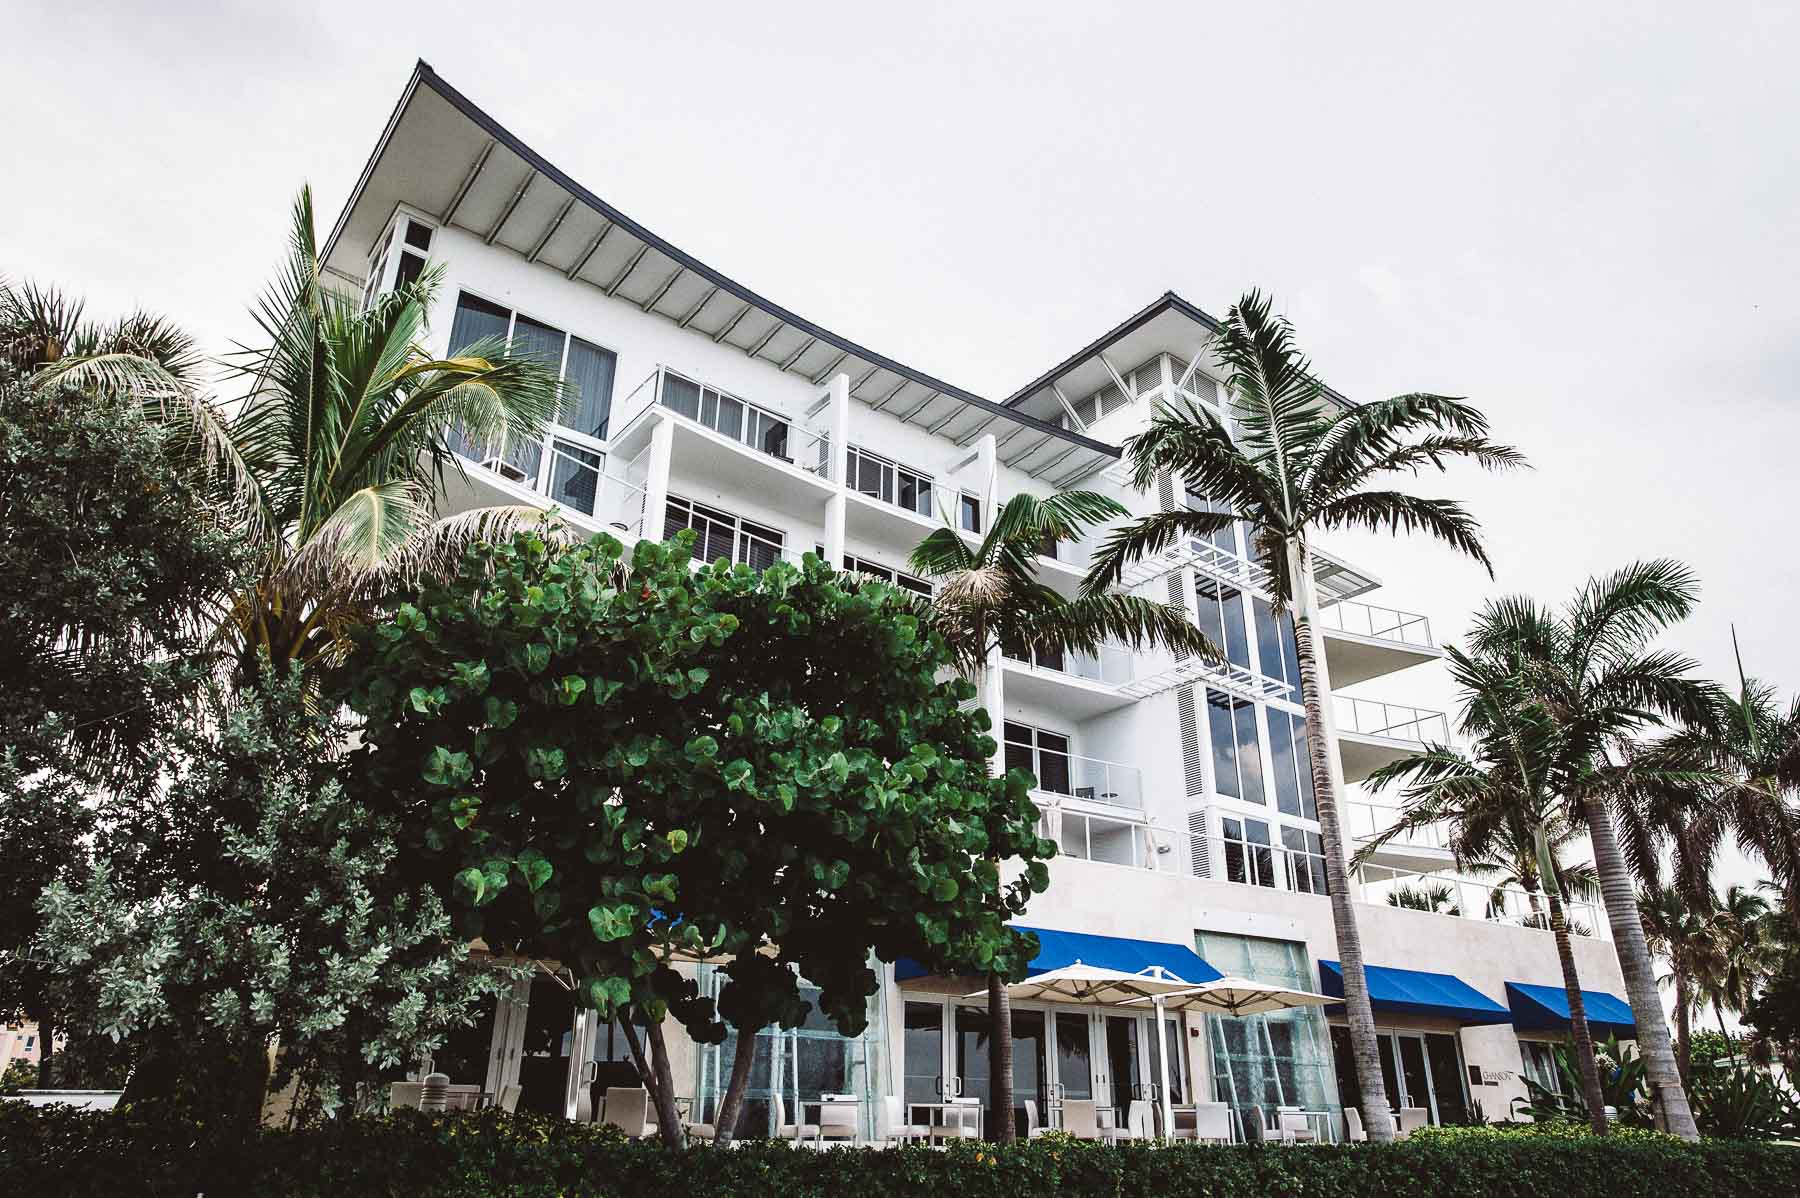 Exterior of The Royal Blues Hotel on a cloudy South Florida day.